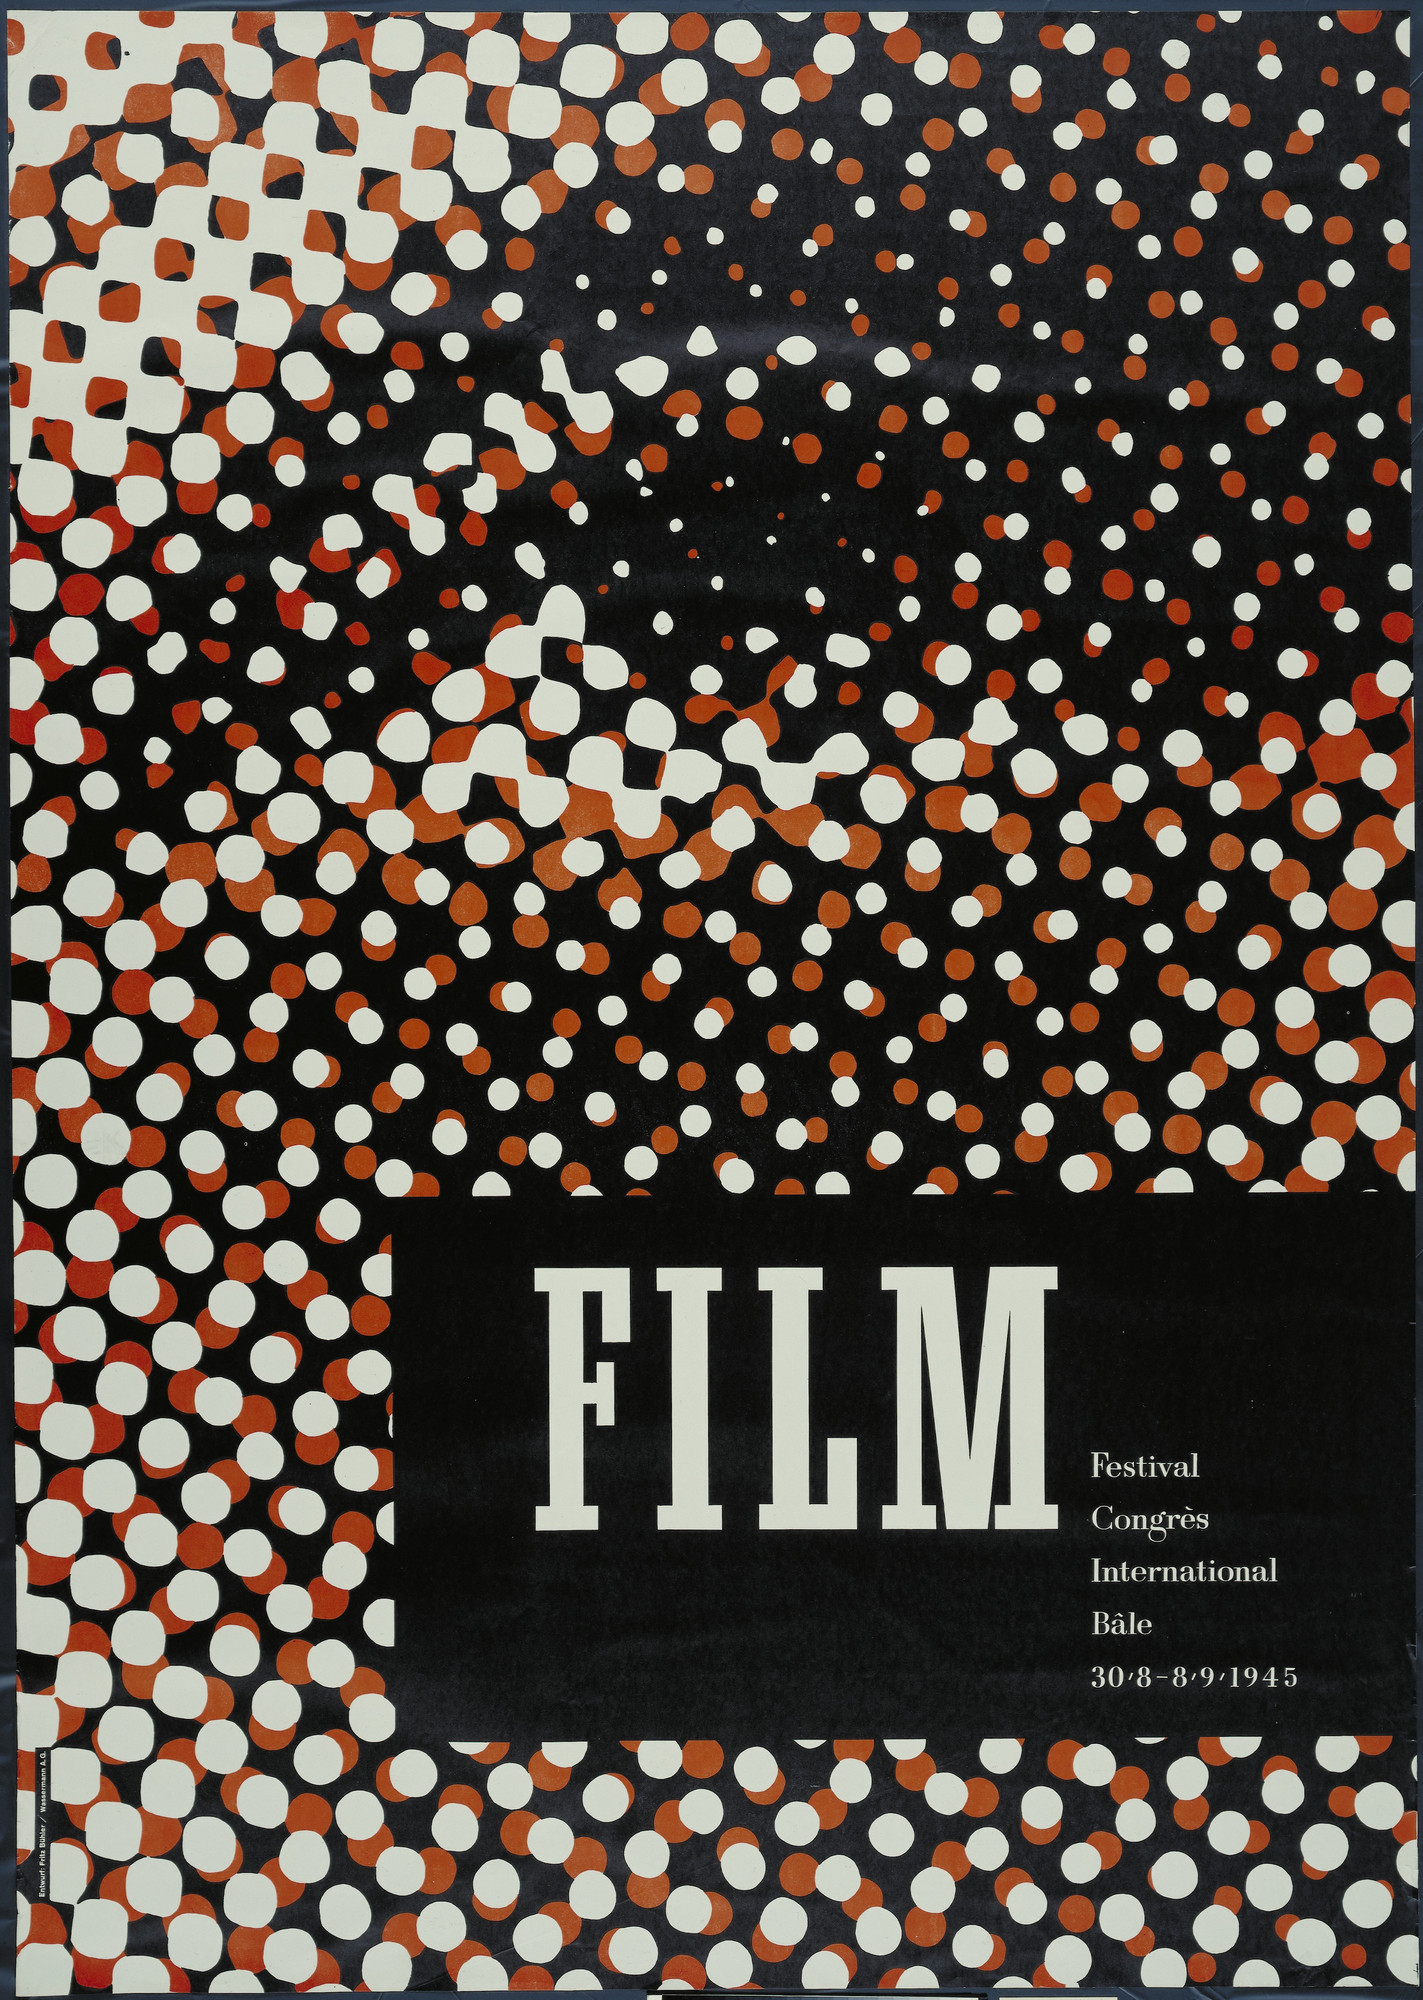 Fritz Bühler. Film/Festival Congres International Bale. 1945